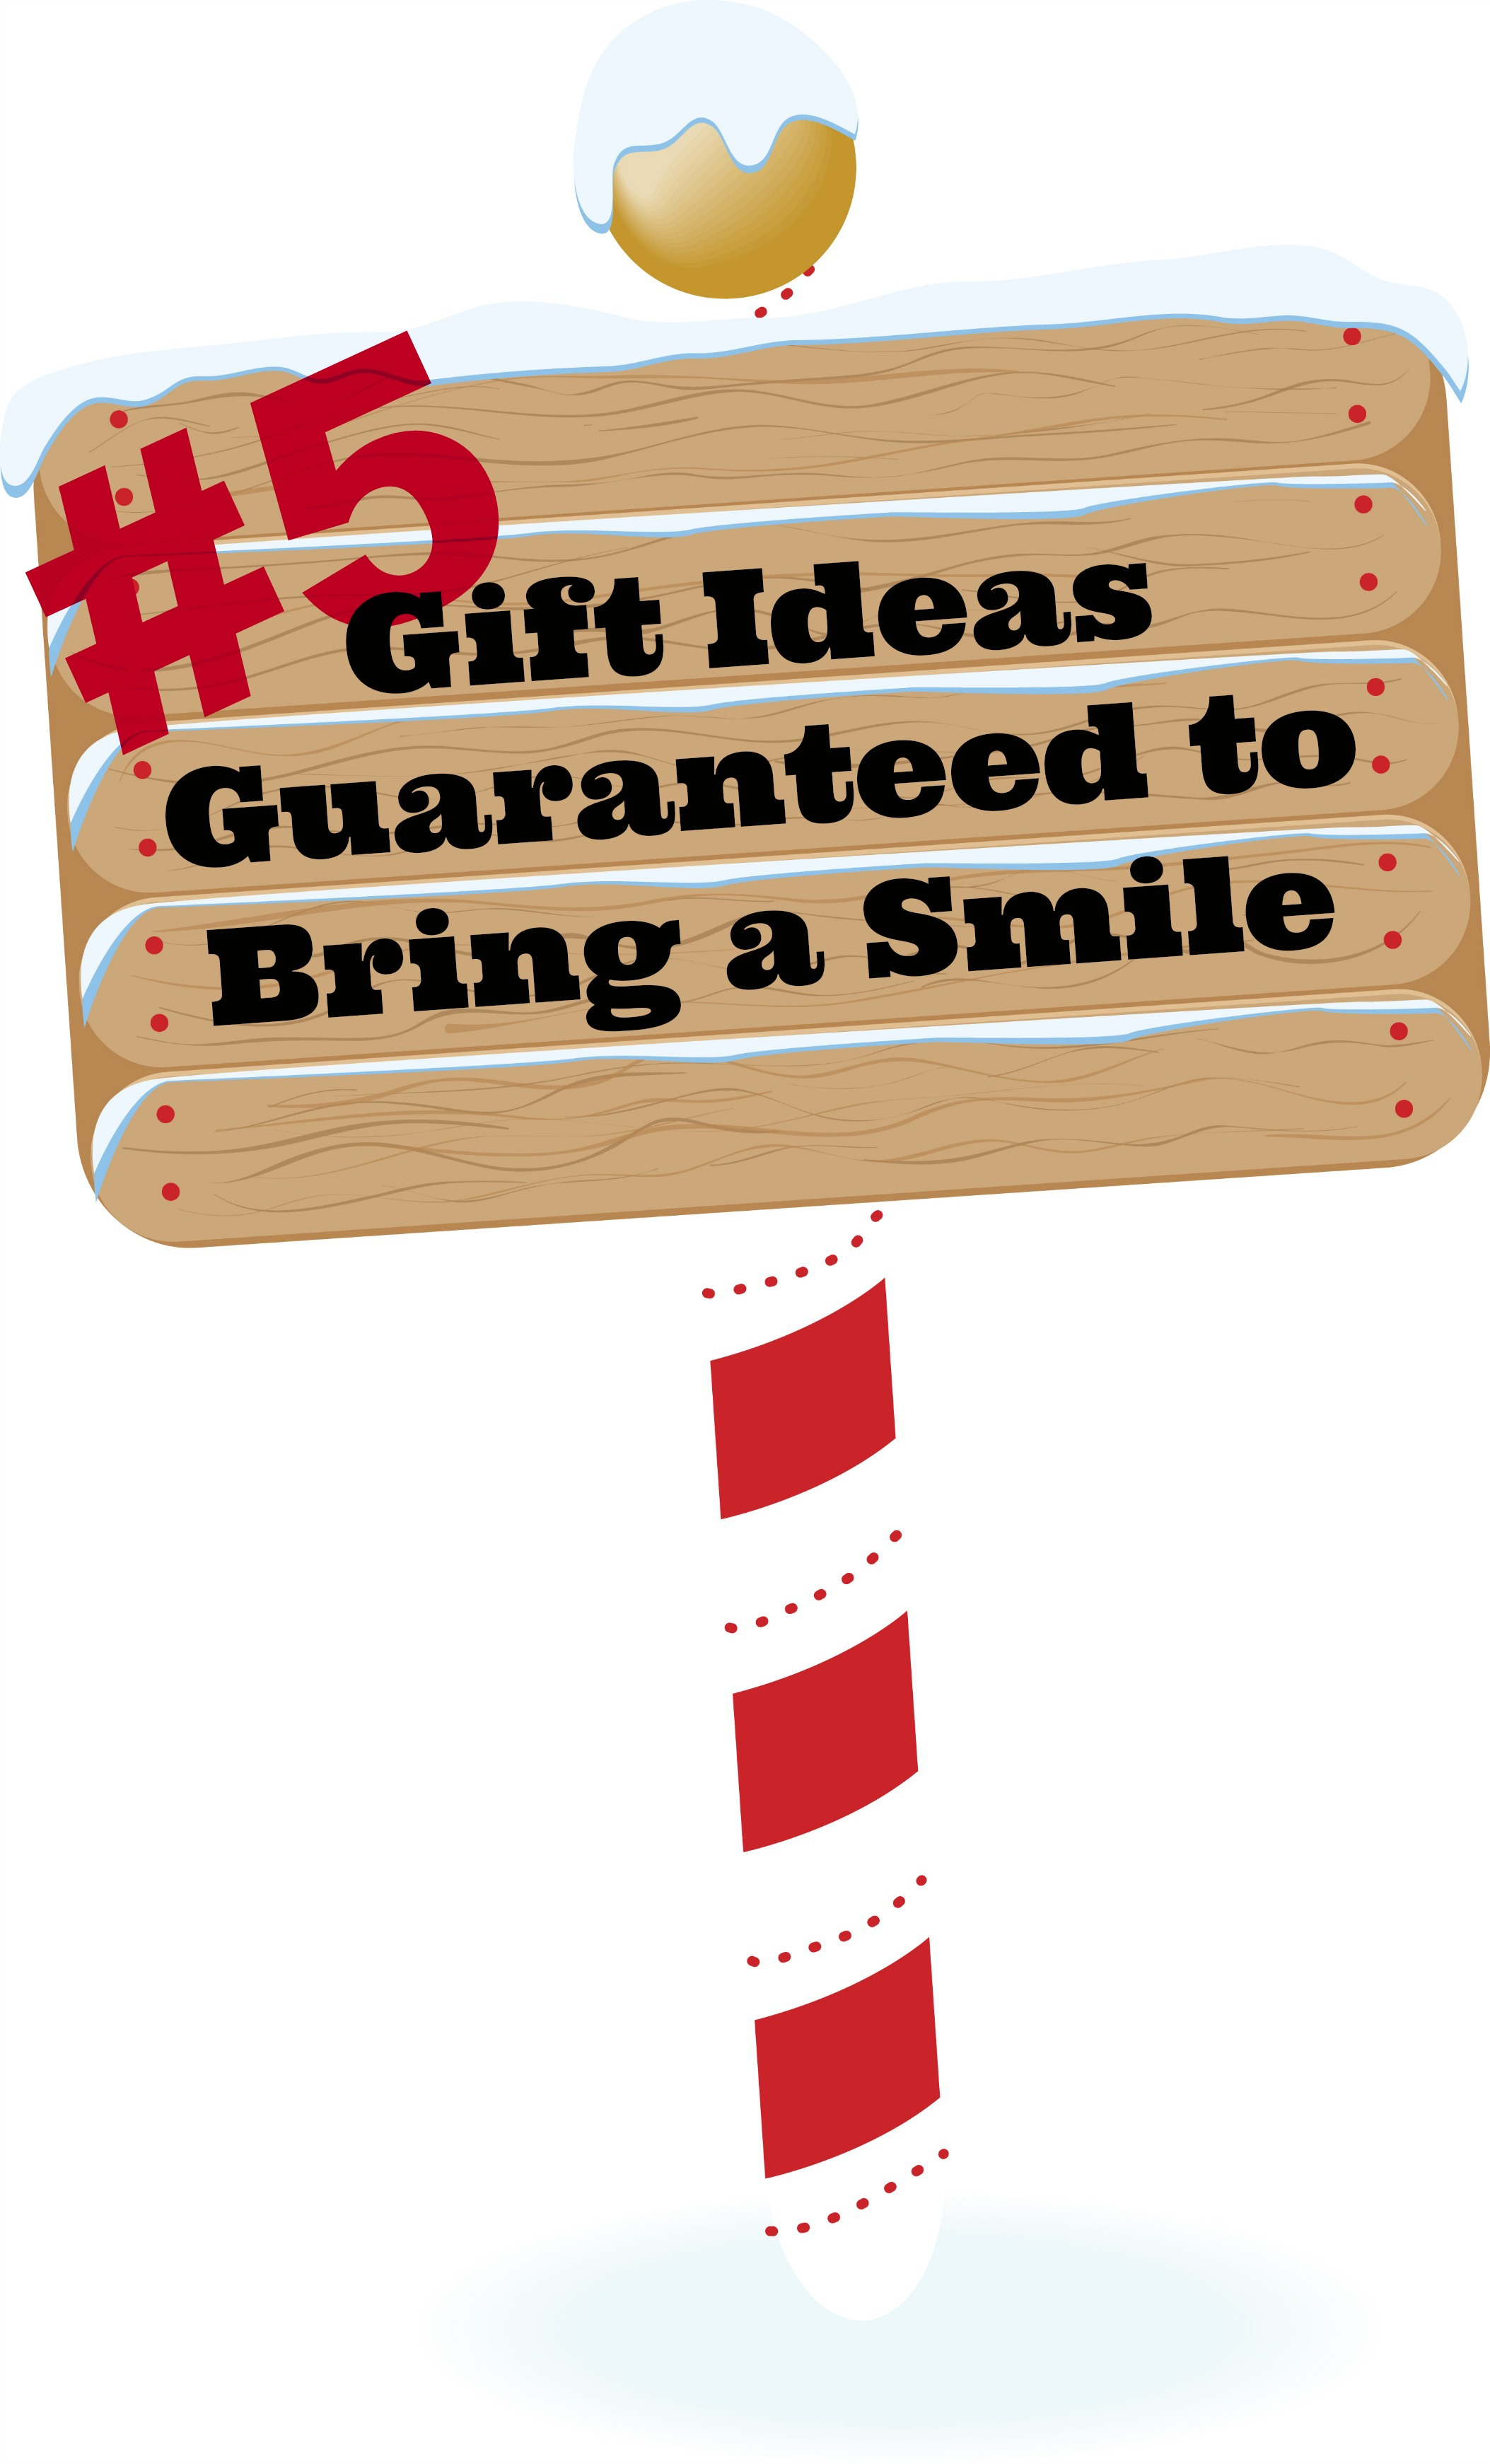 Gift Ideas Guaranteed to Bring a Smile – Idea 5